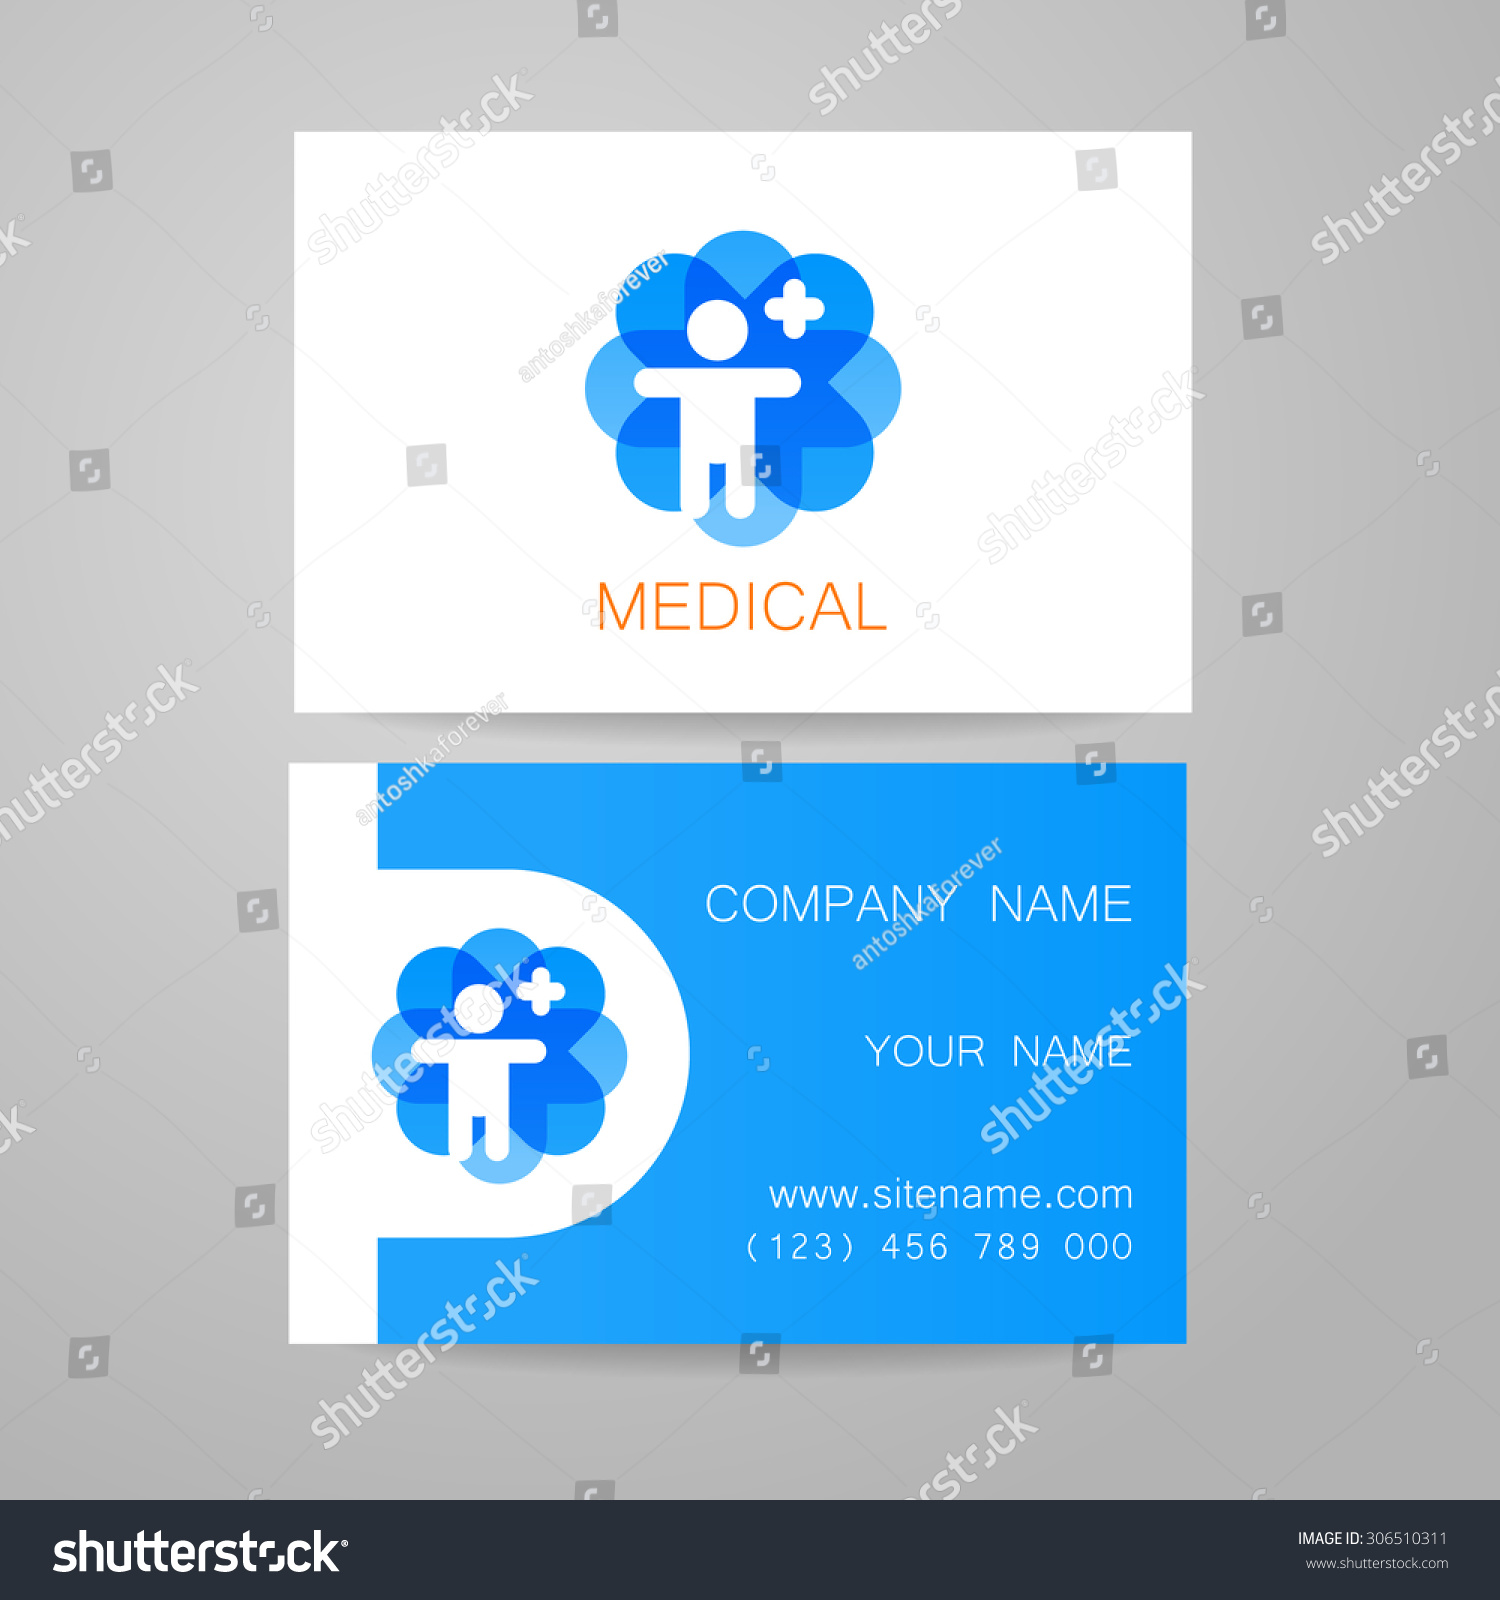 Template Medical Business Cards Stock Photo (Photo, Vector ...